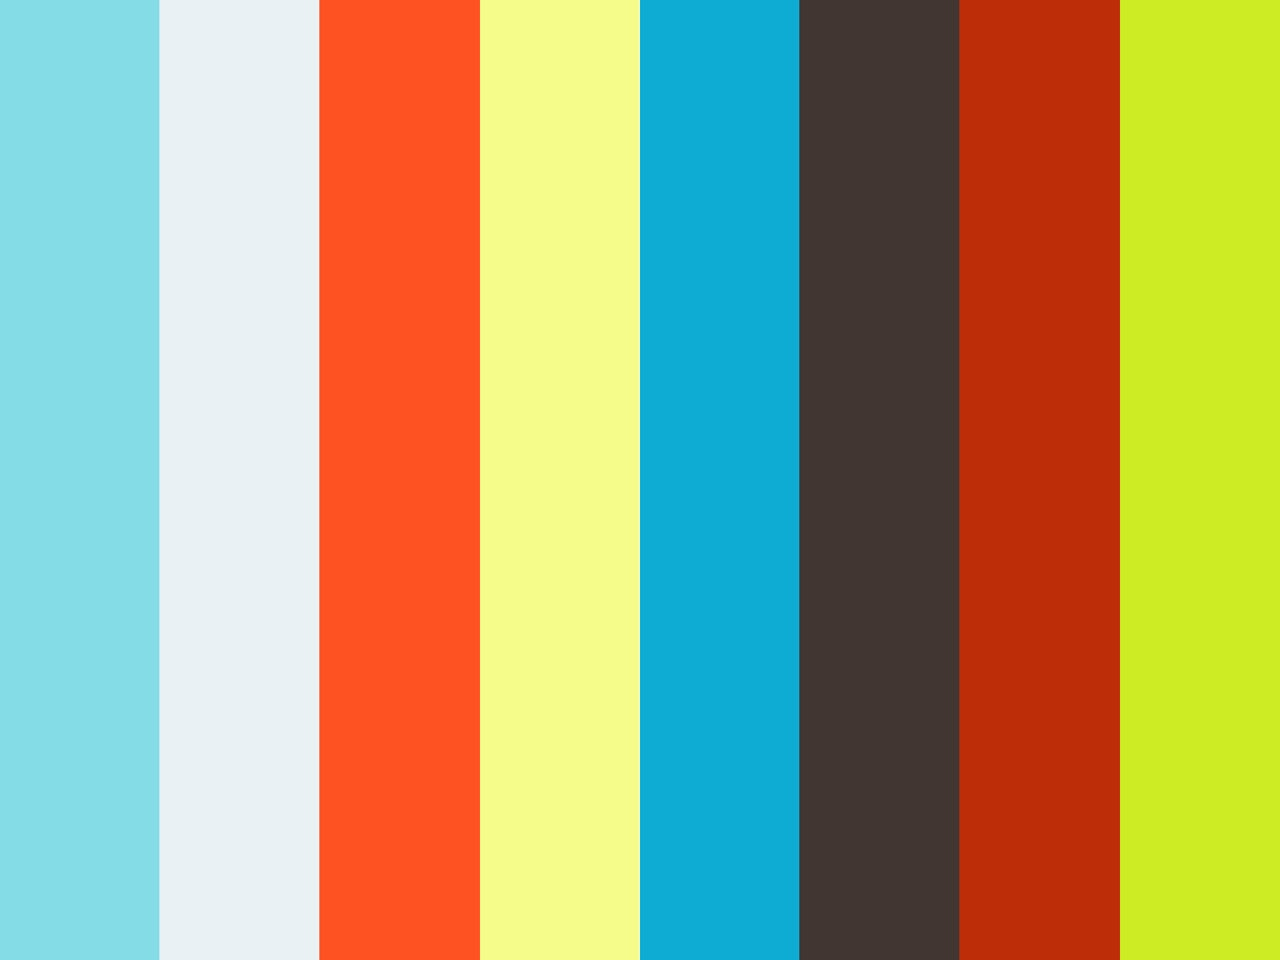 Jellyfish @ Monterey Bay Aquarium